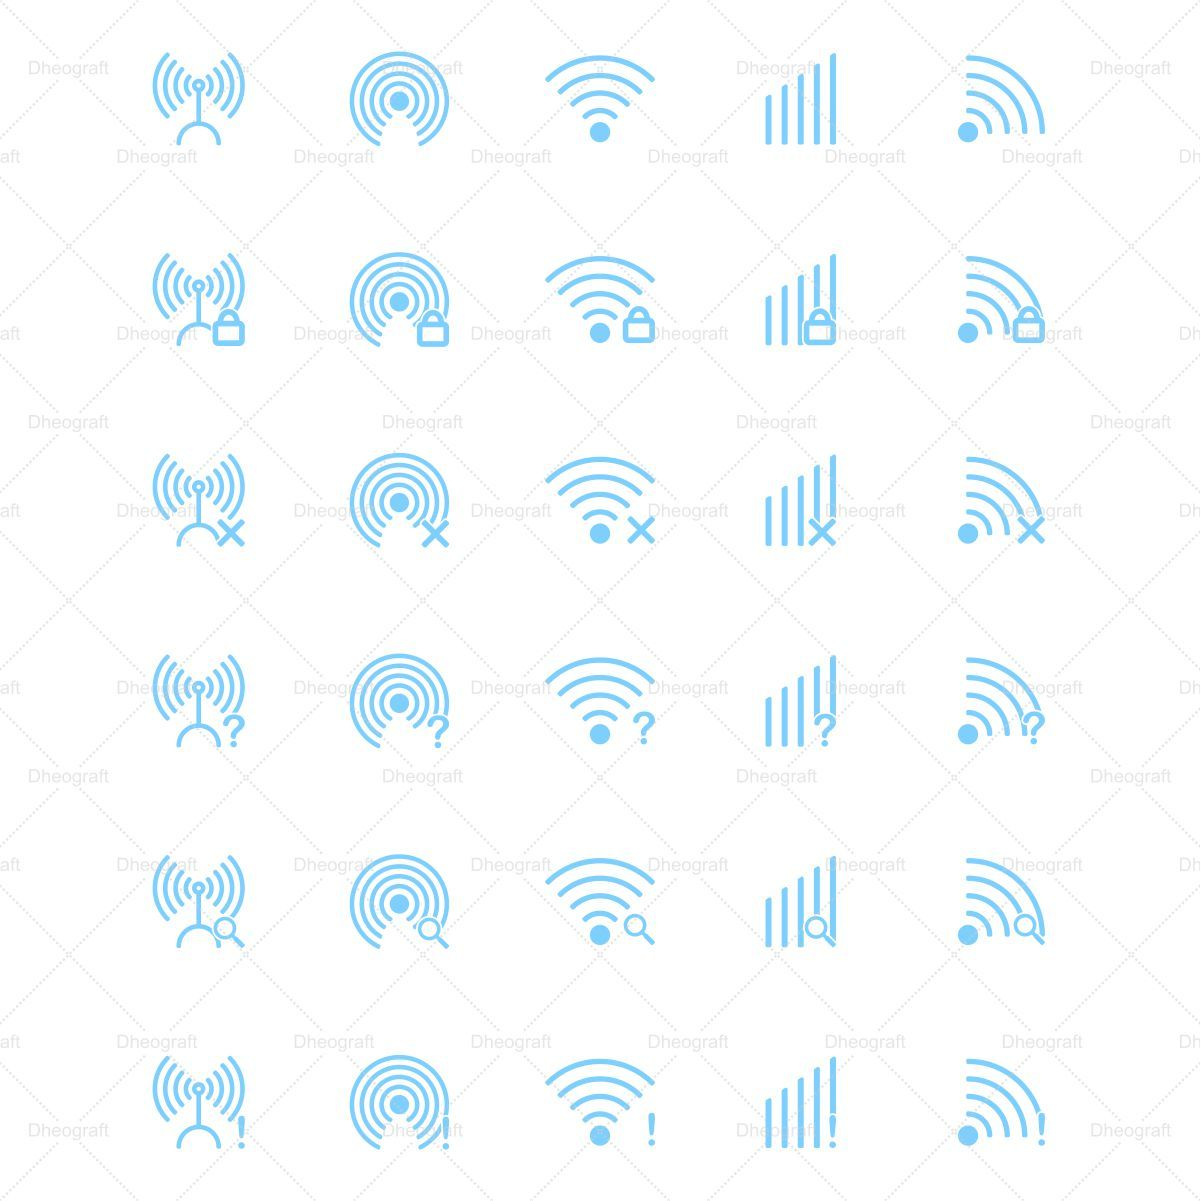 30 Wireless Icons Screenshot 1